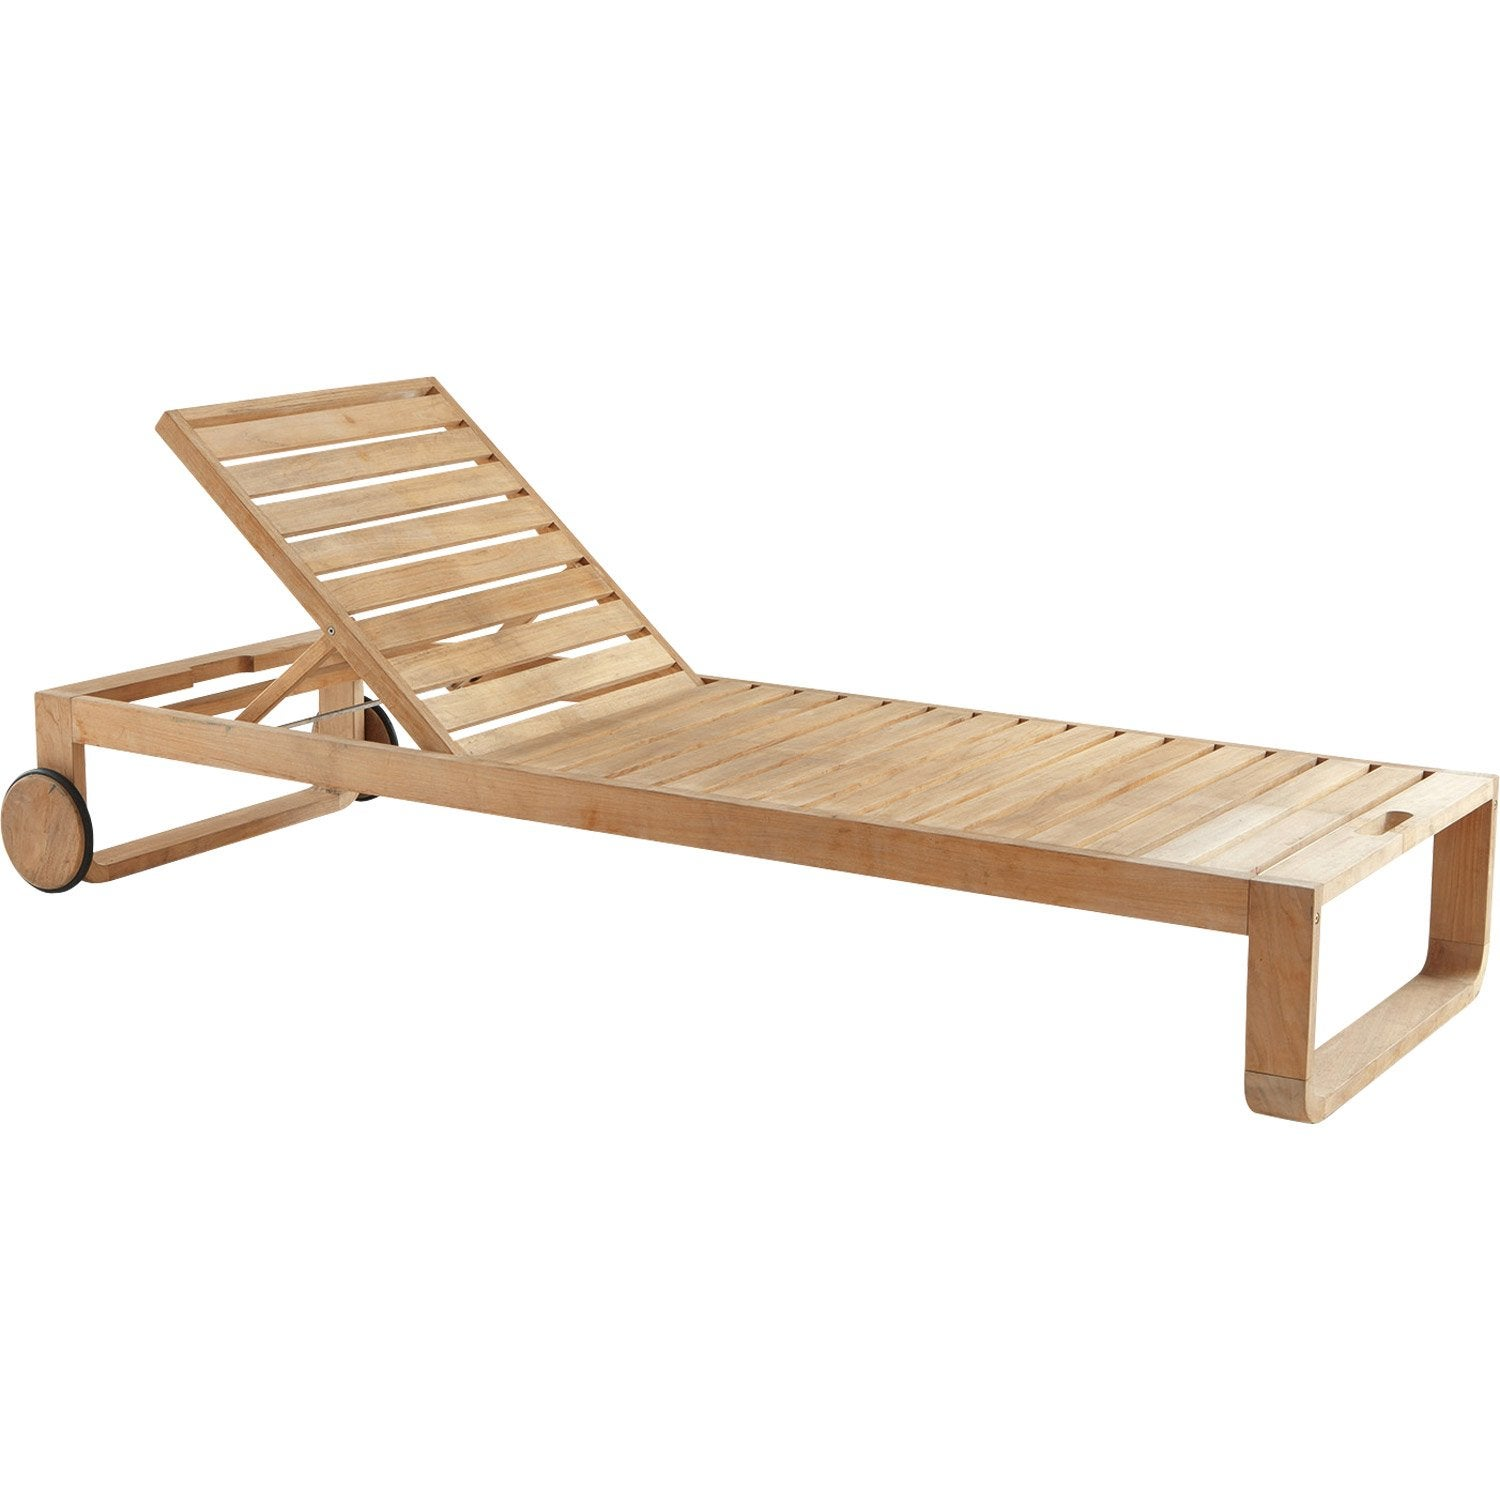 Bain de soleil de jardin en bois resort naturel leroy merlin for Chaise longue leroy merlin